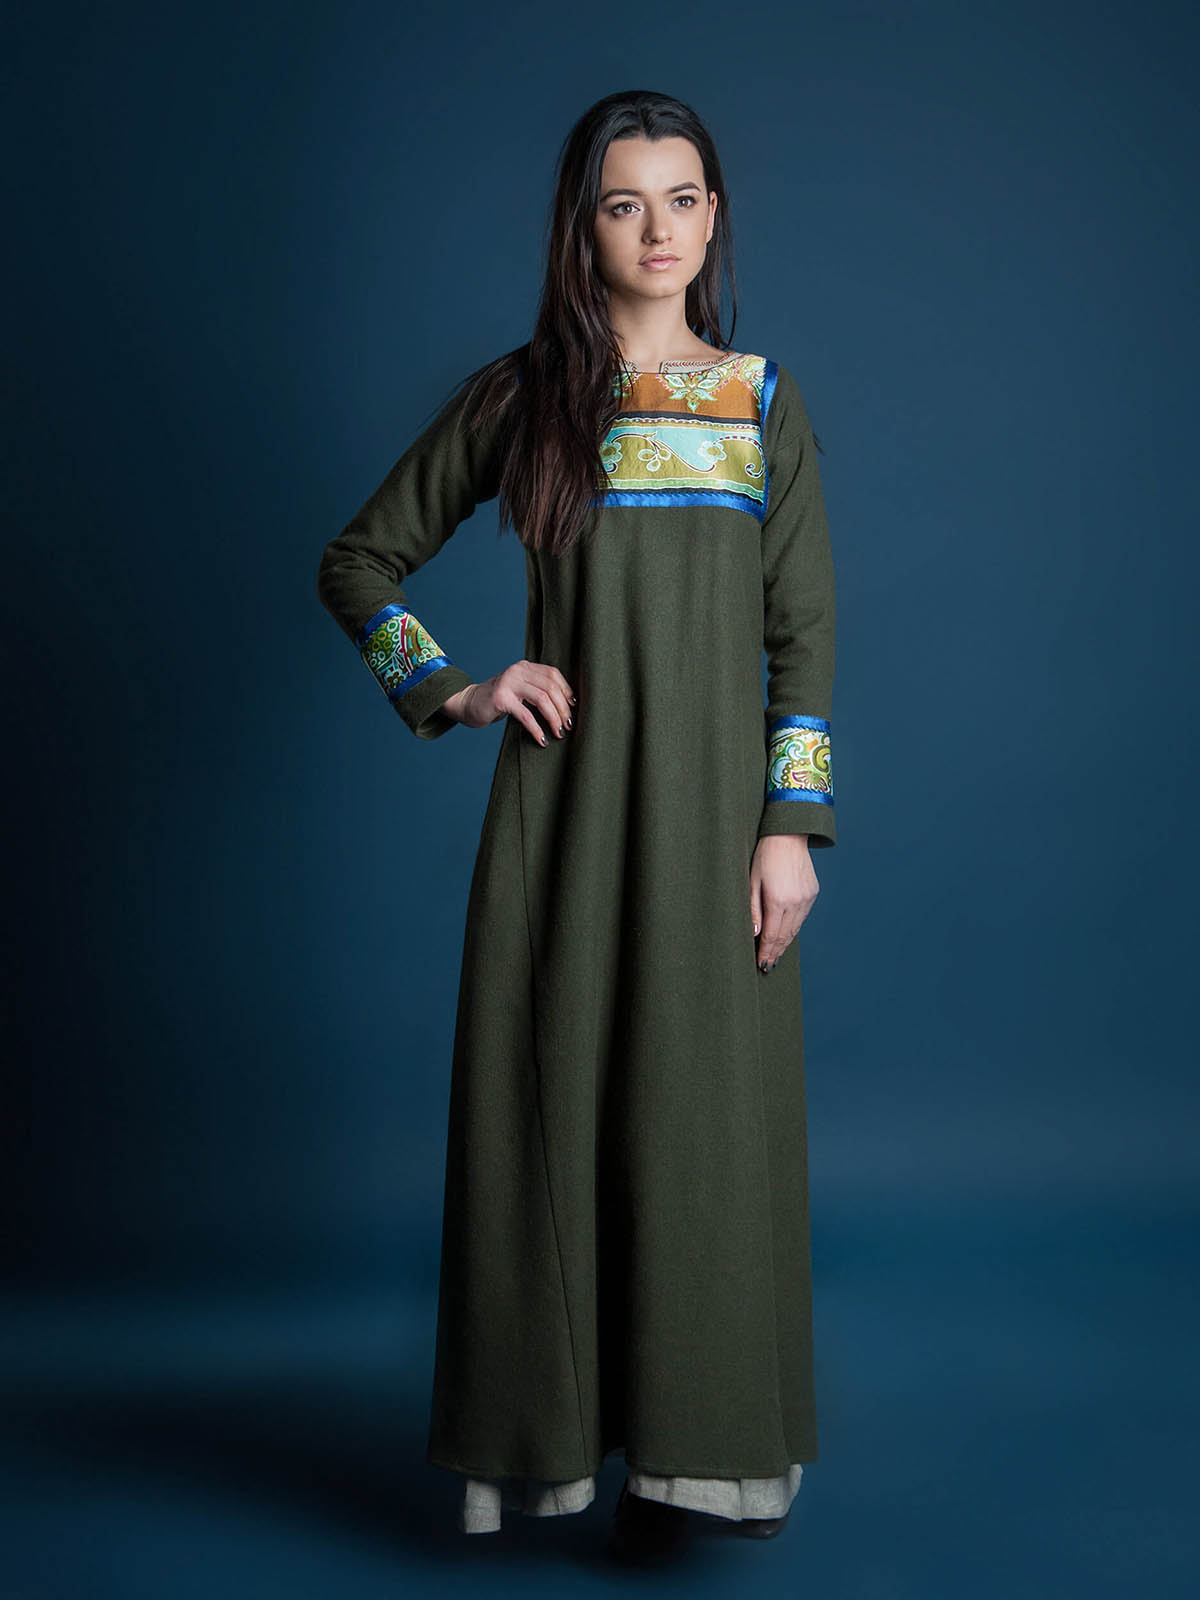 Women s viking outfit